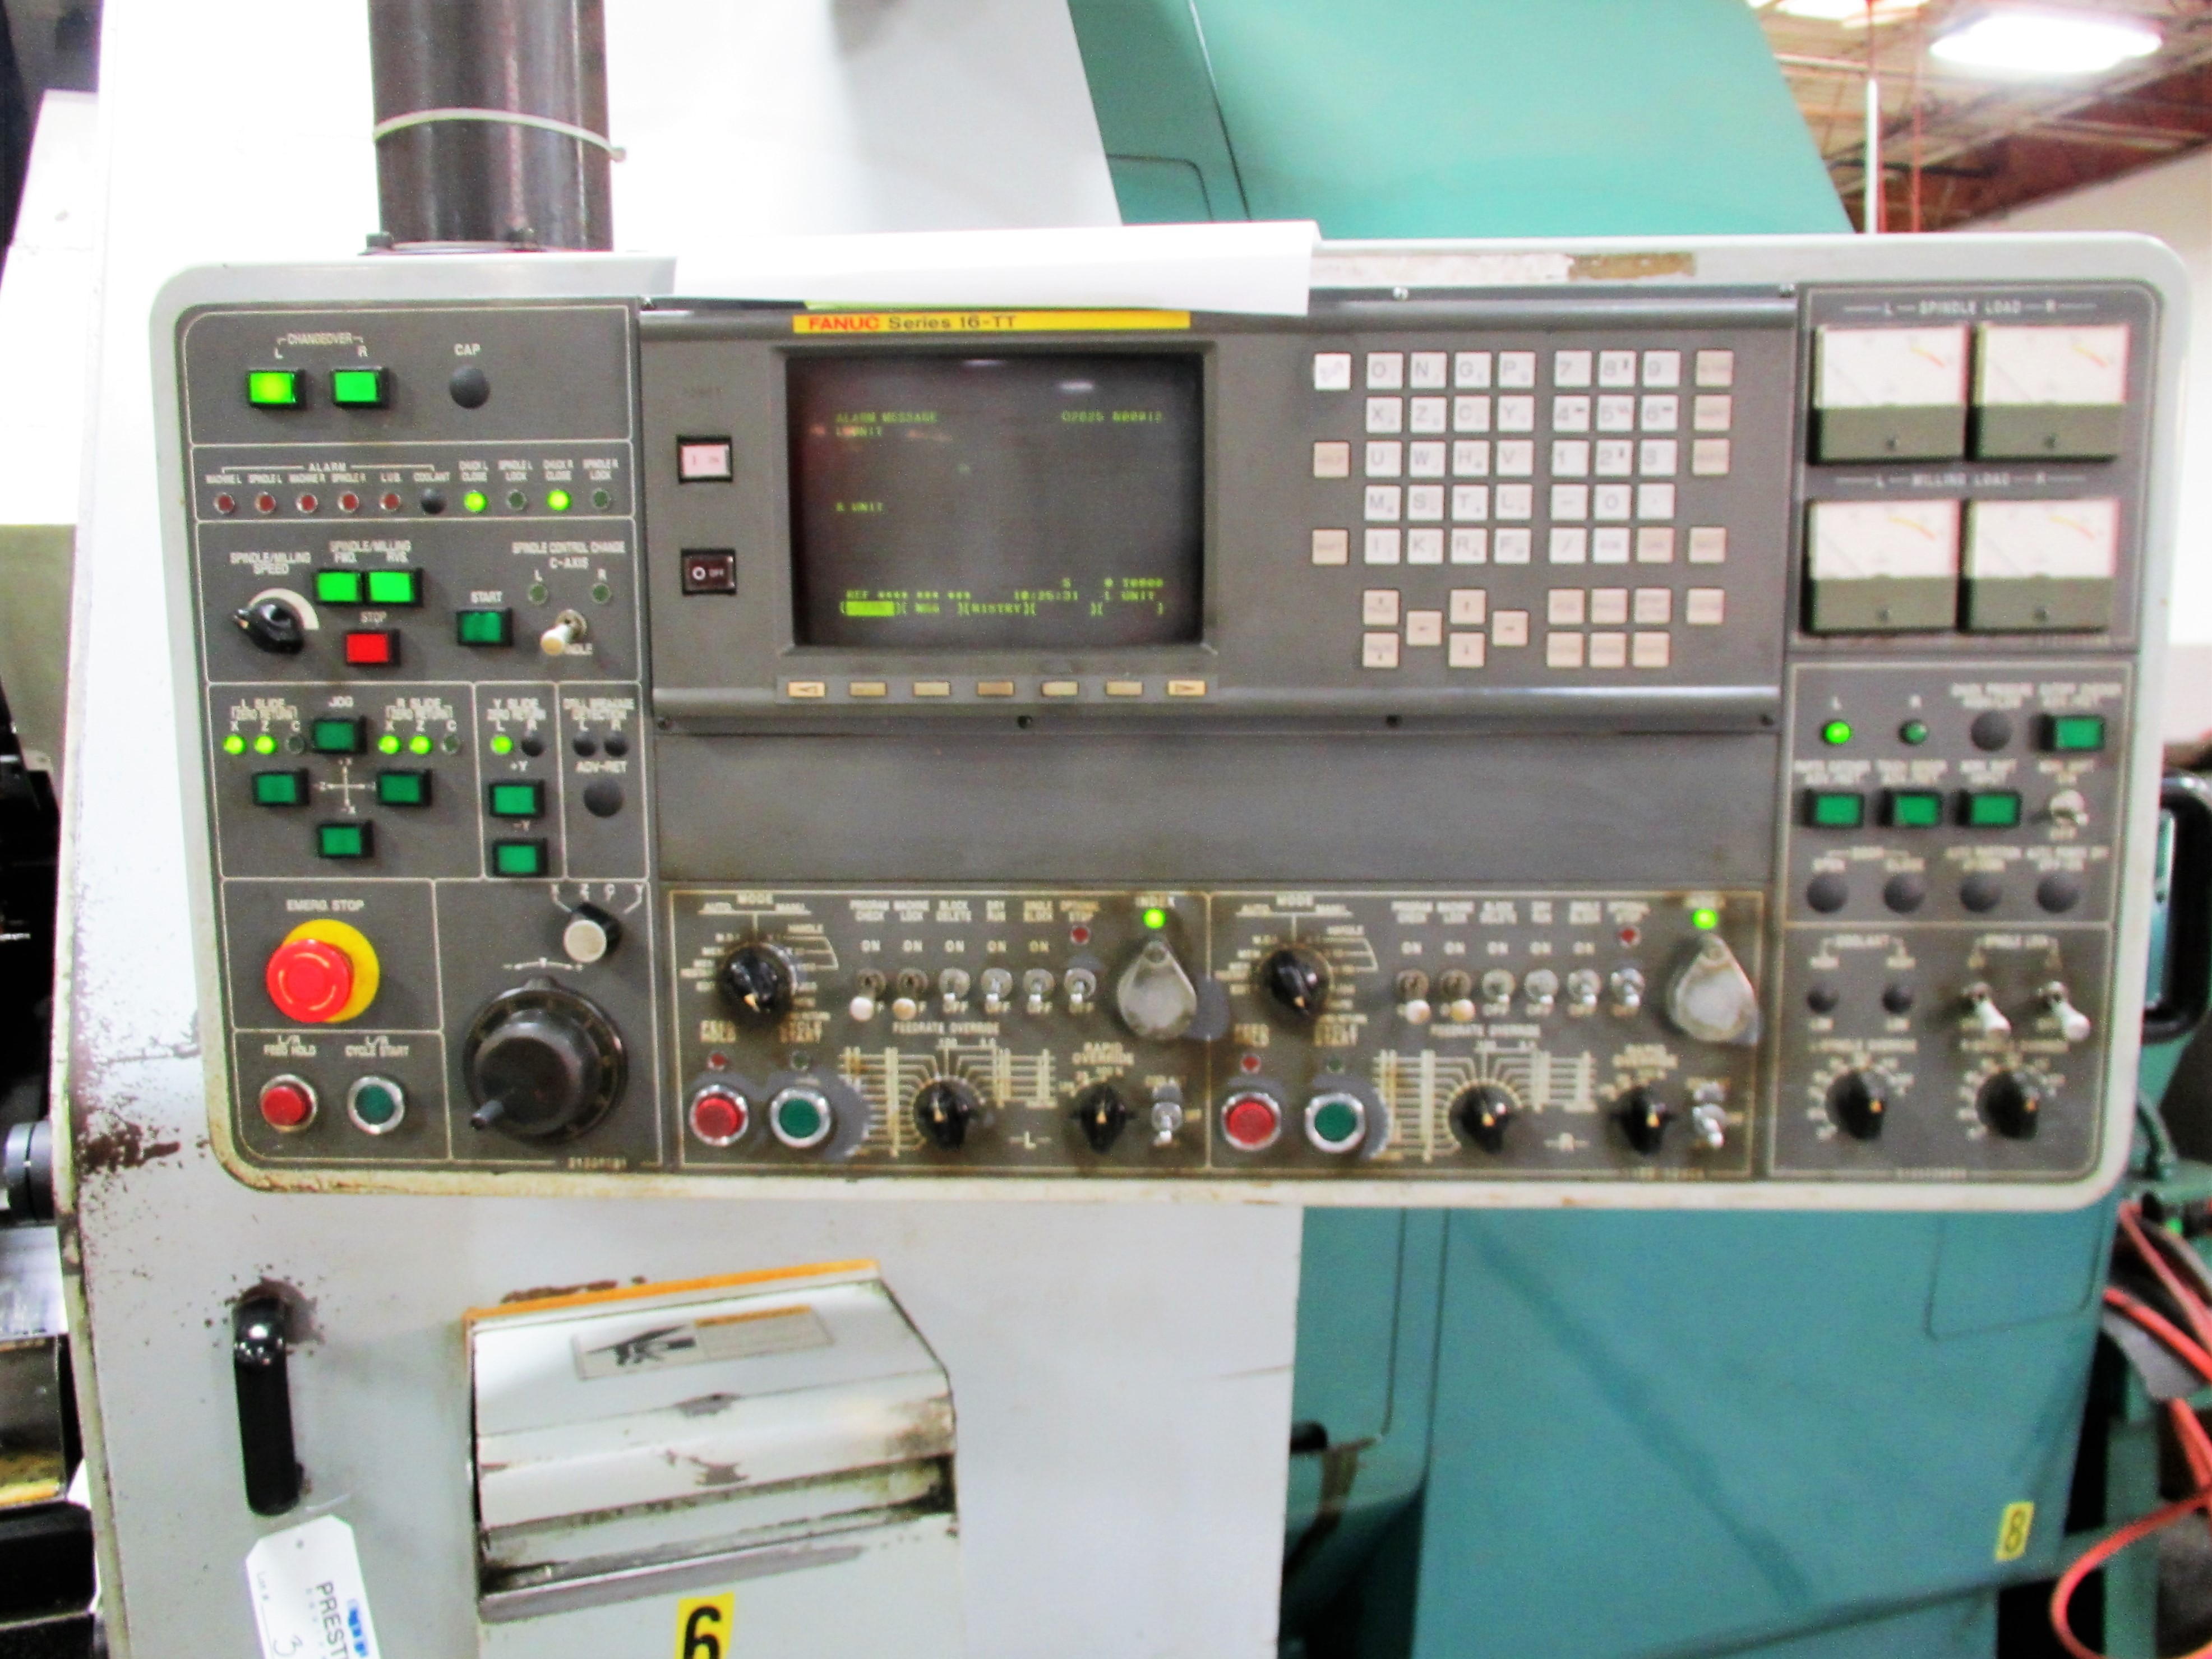 NAKAMURA TOME TW-30MM 7-AXIS CNC TWIN SPINDLE TURNING CENTER - Image 3 of 21